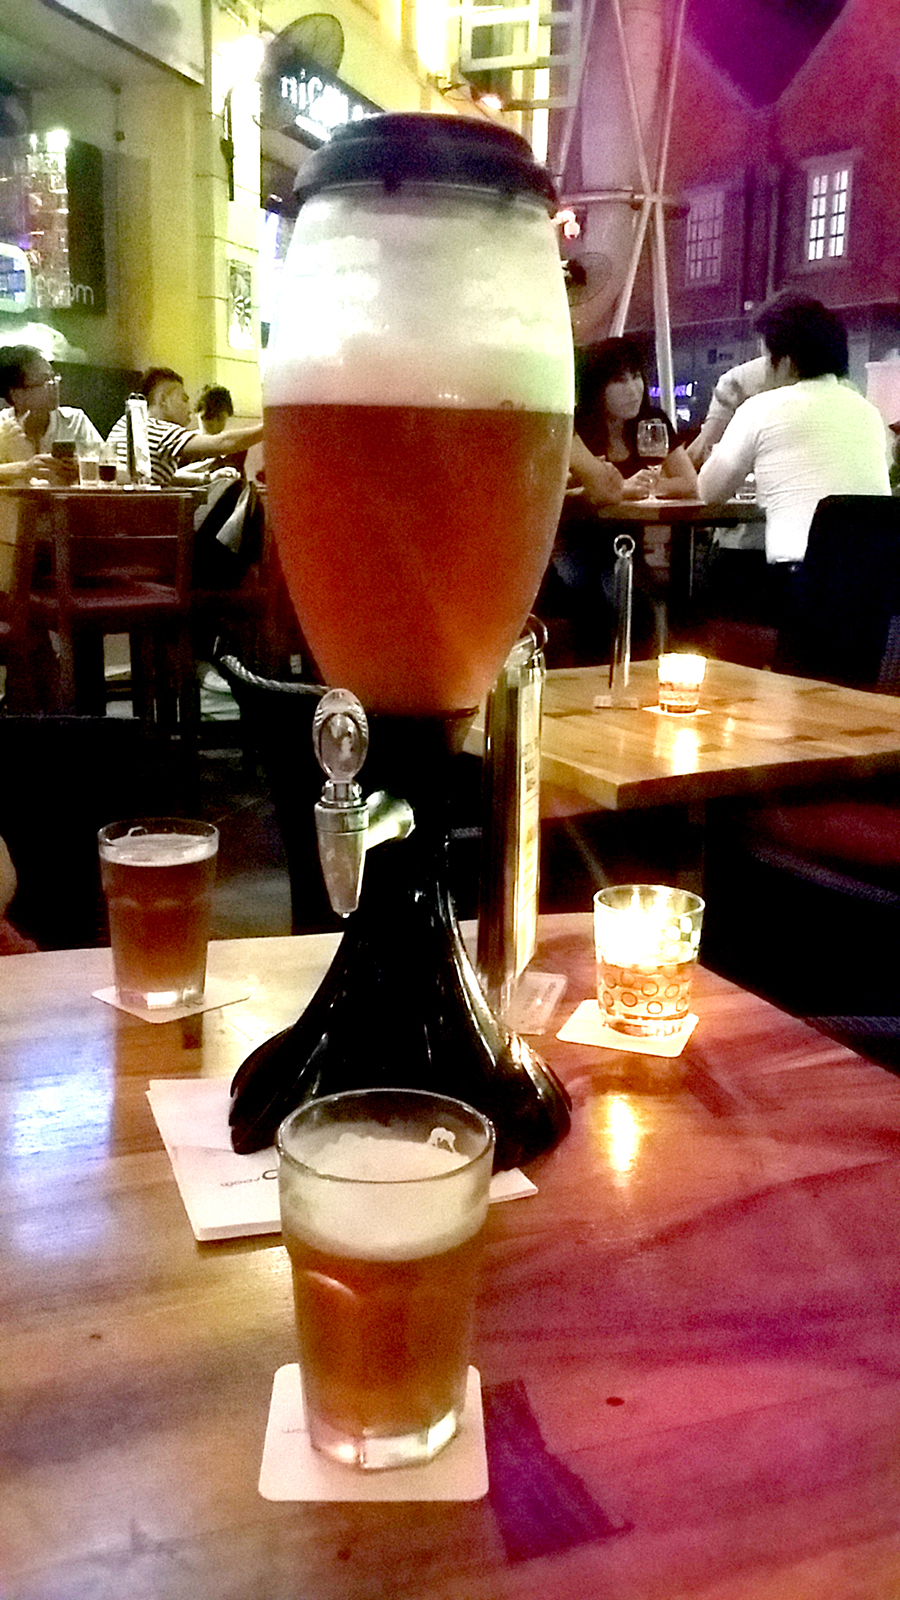 Tower of golden ale, Clarke Quay